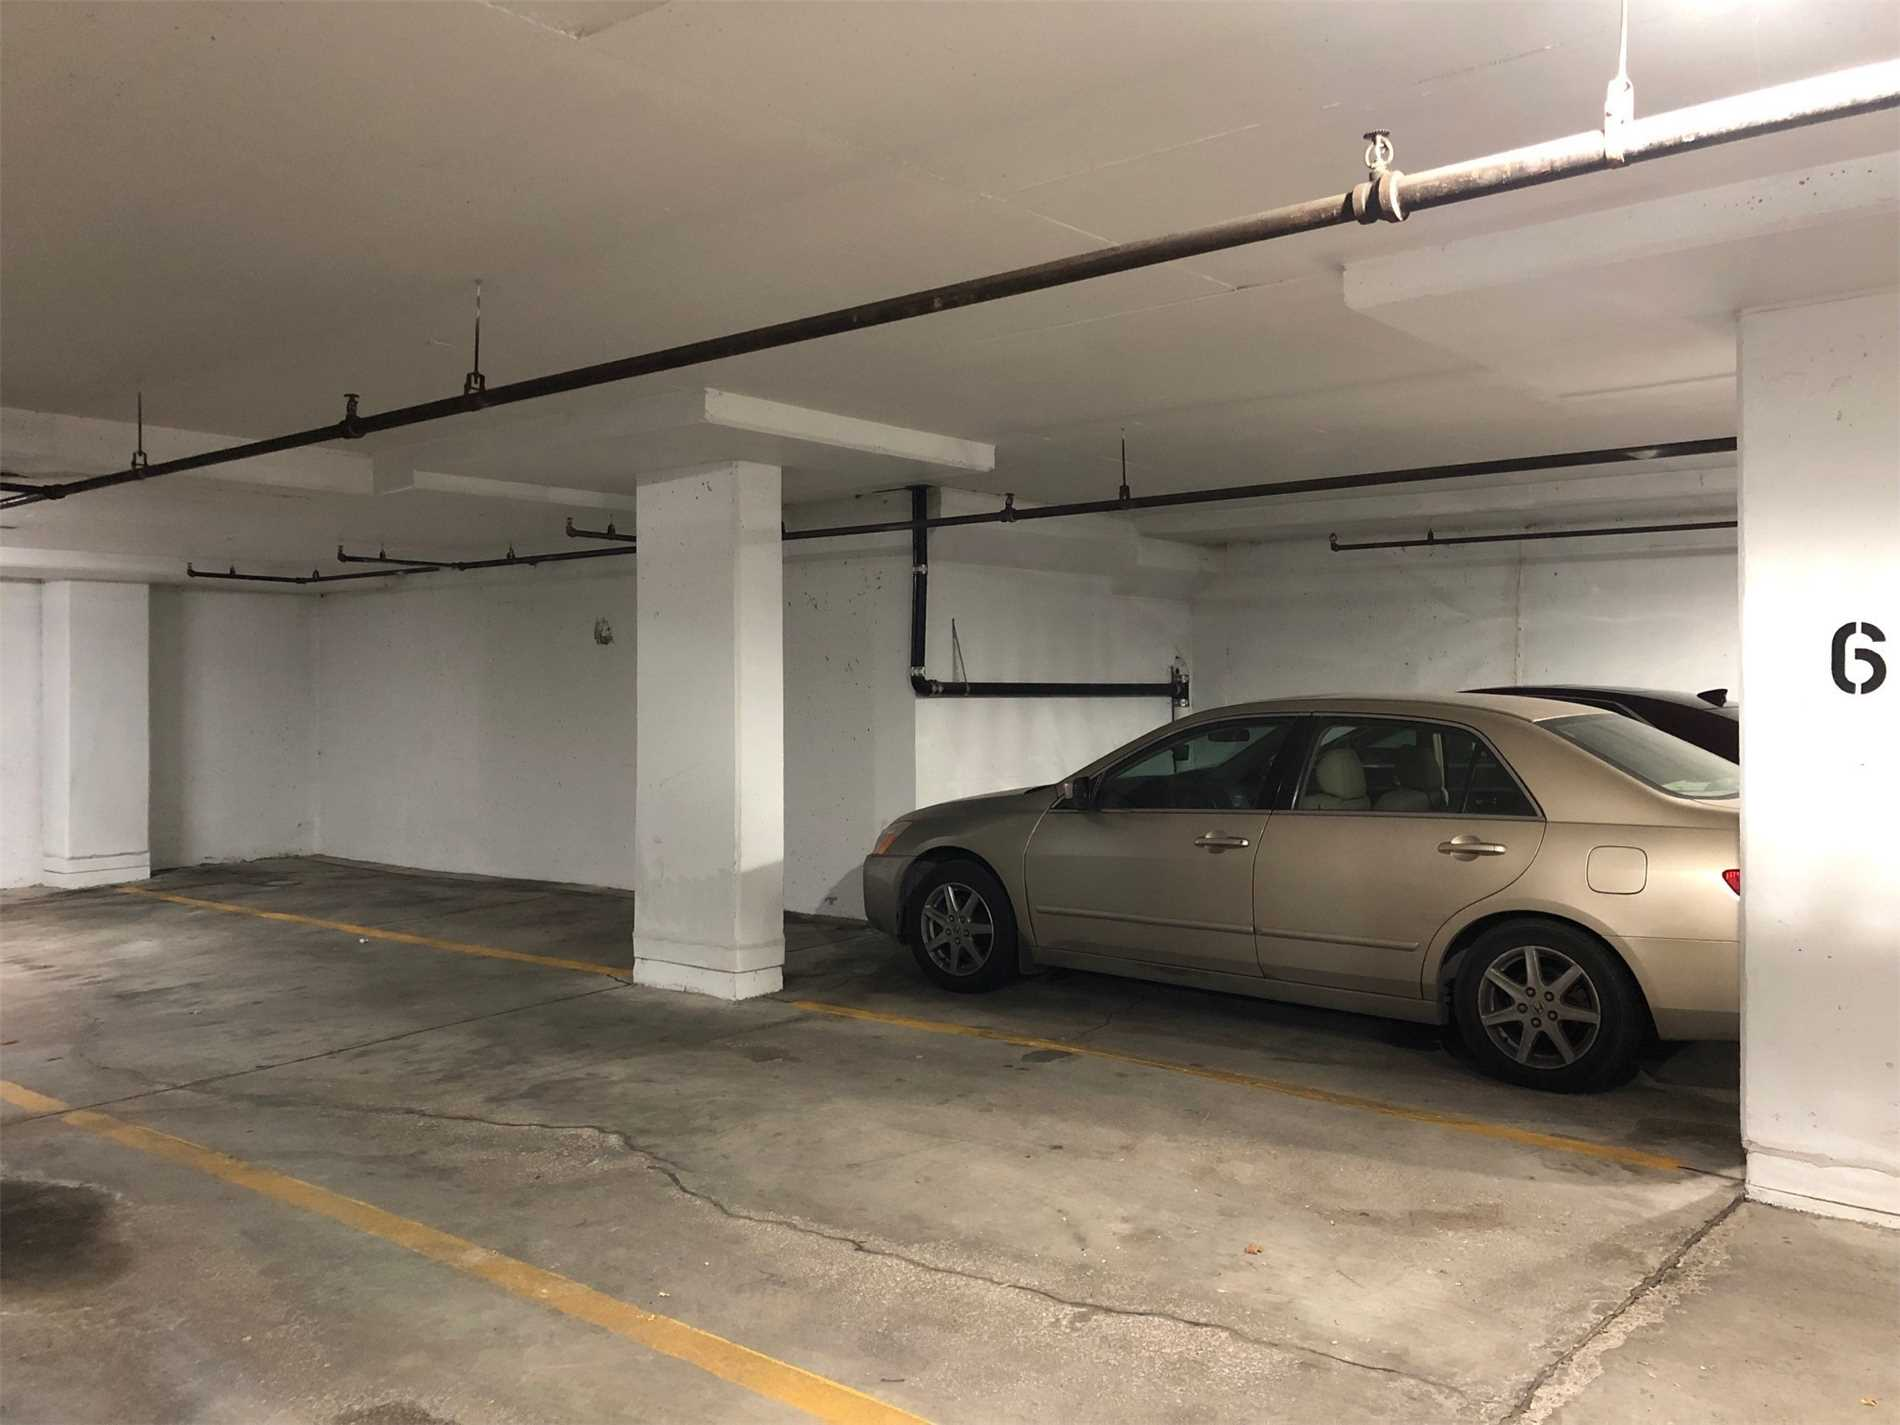 Double Length Style Parking Being Offered For Sale - See Floor Plan For Measurements.  The Building In General Offers Over 200 Condos, With Suite Sizes And Layouts Ranging From Compact Bachelor Apartments To Comfortable Two-Bedroom Suites Plus Den.